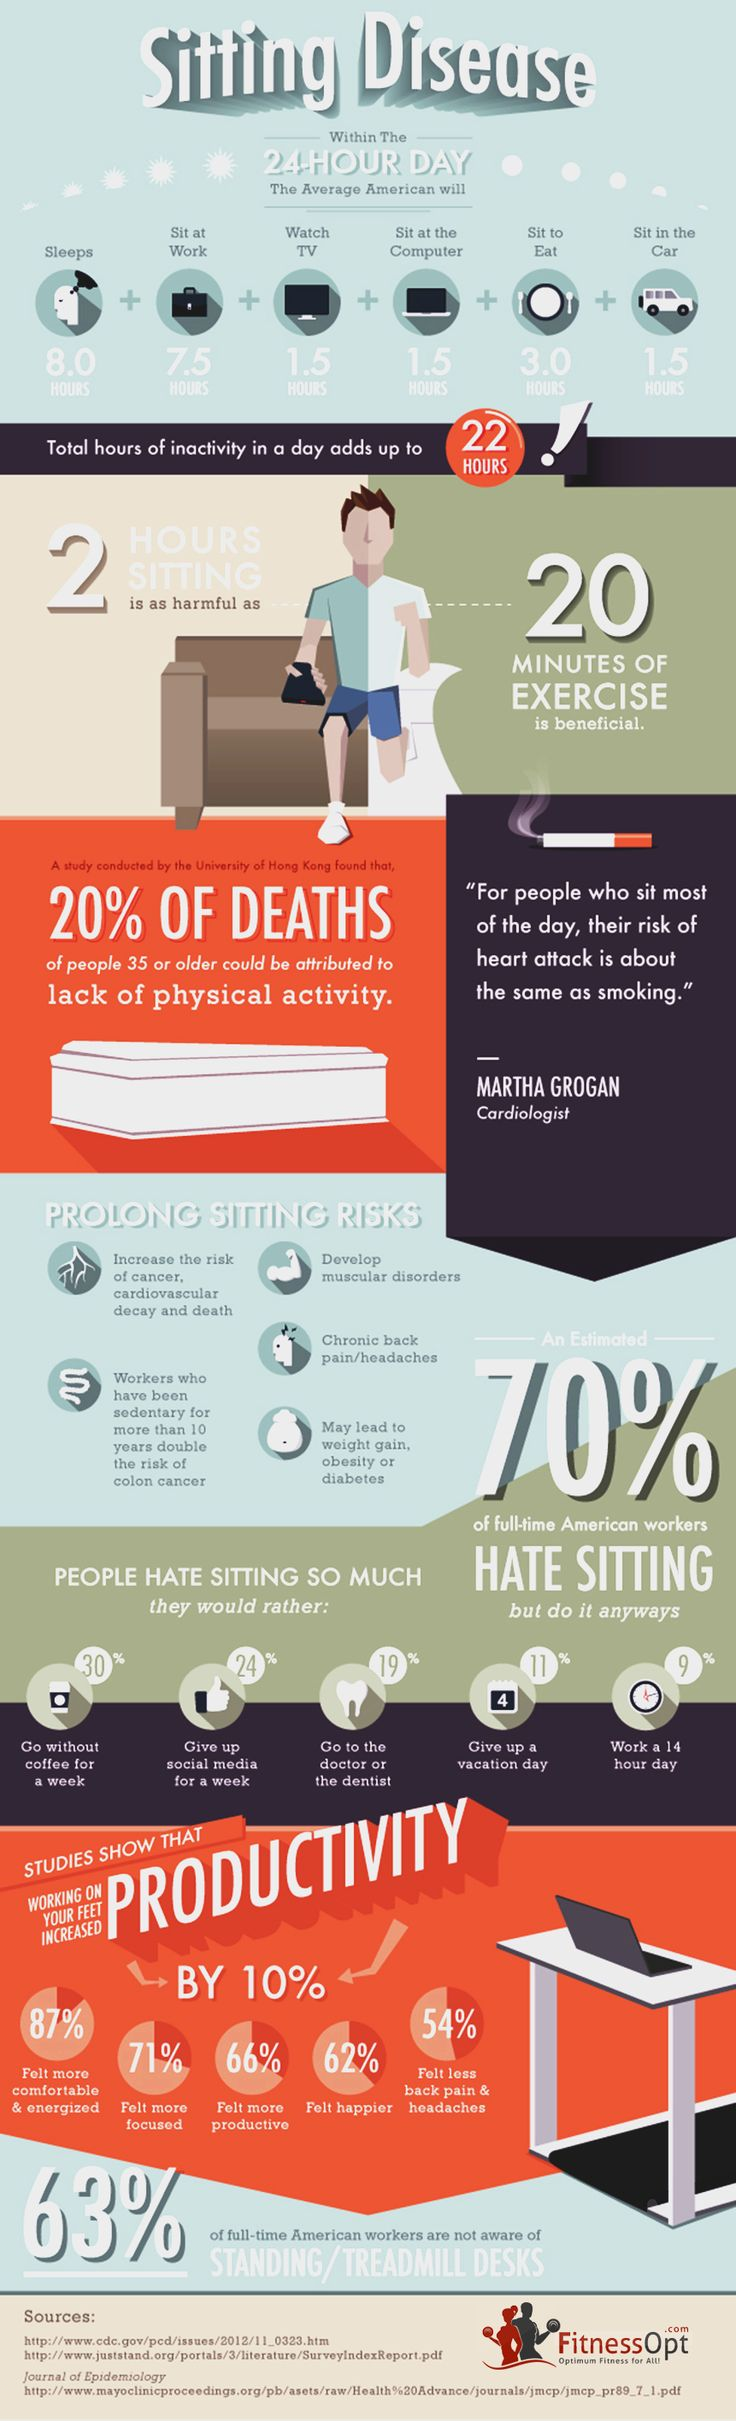 We are sharing some tips of how to avoid the Sitting Disease. http://wheygoldstandardnatural.tumblr.com/post/135238219603/optimum-nutrition-whey-gold-standard-natural